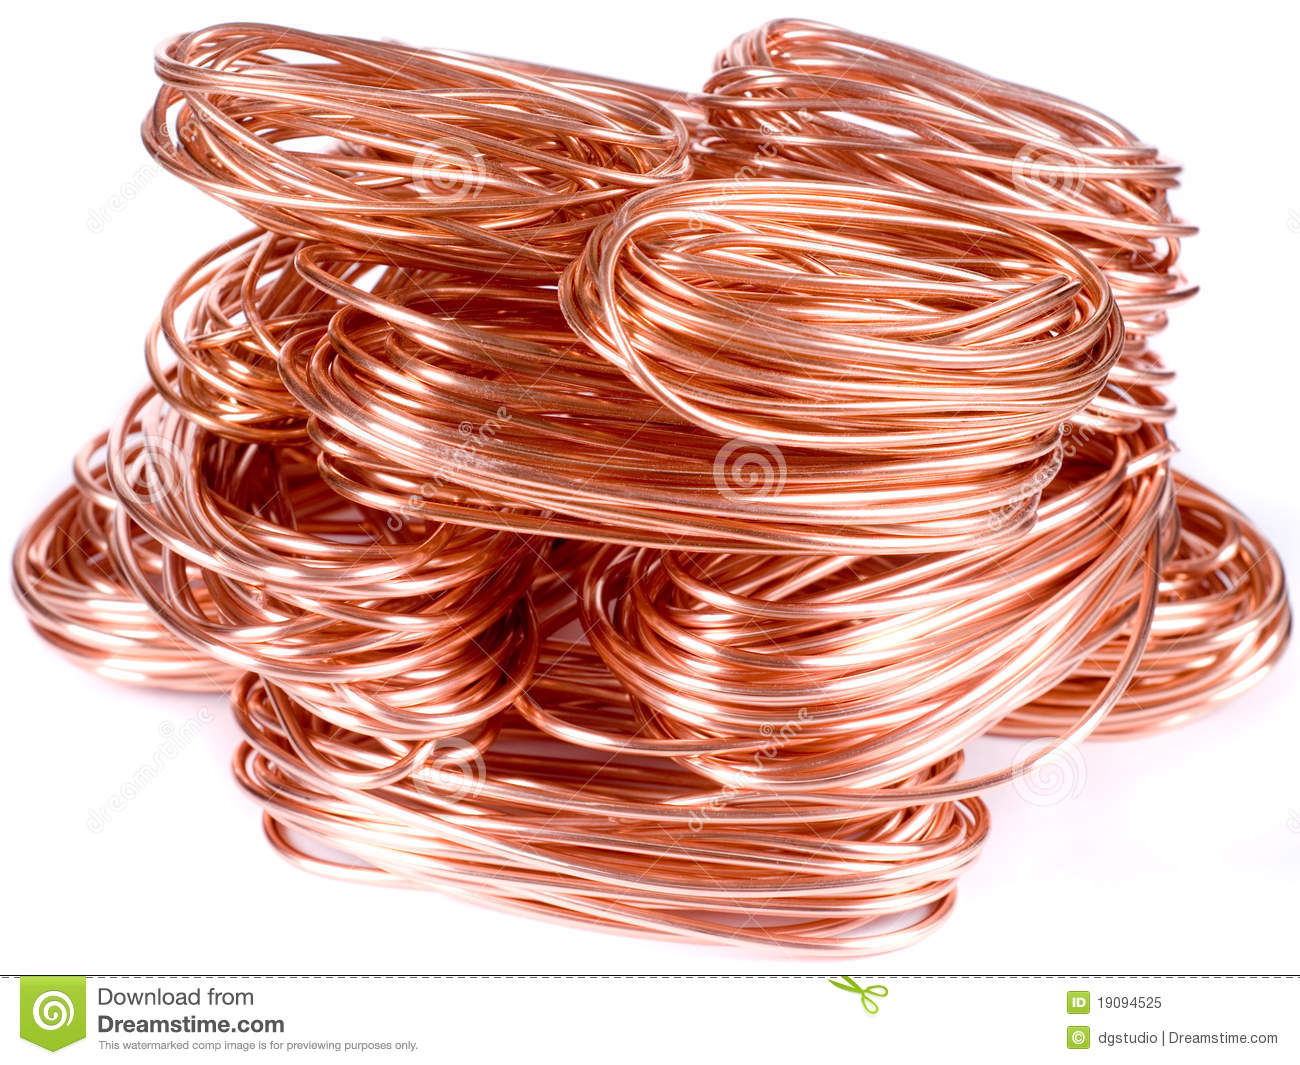 Copper Cable Market Share : Copper wire royalty free stock photo image